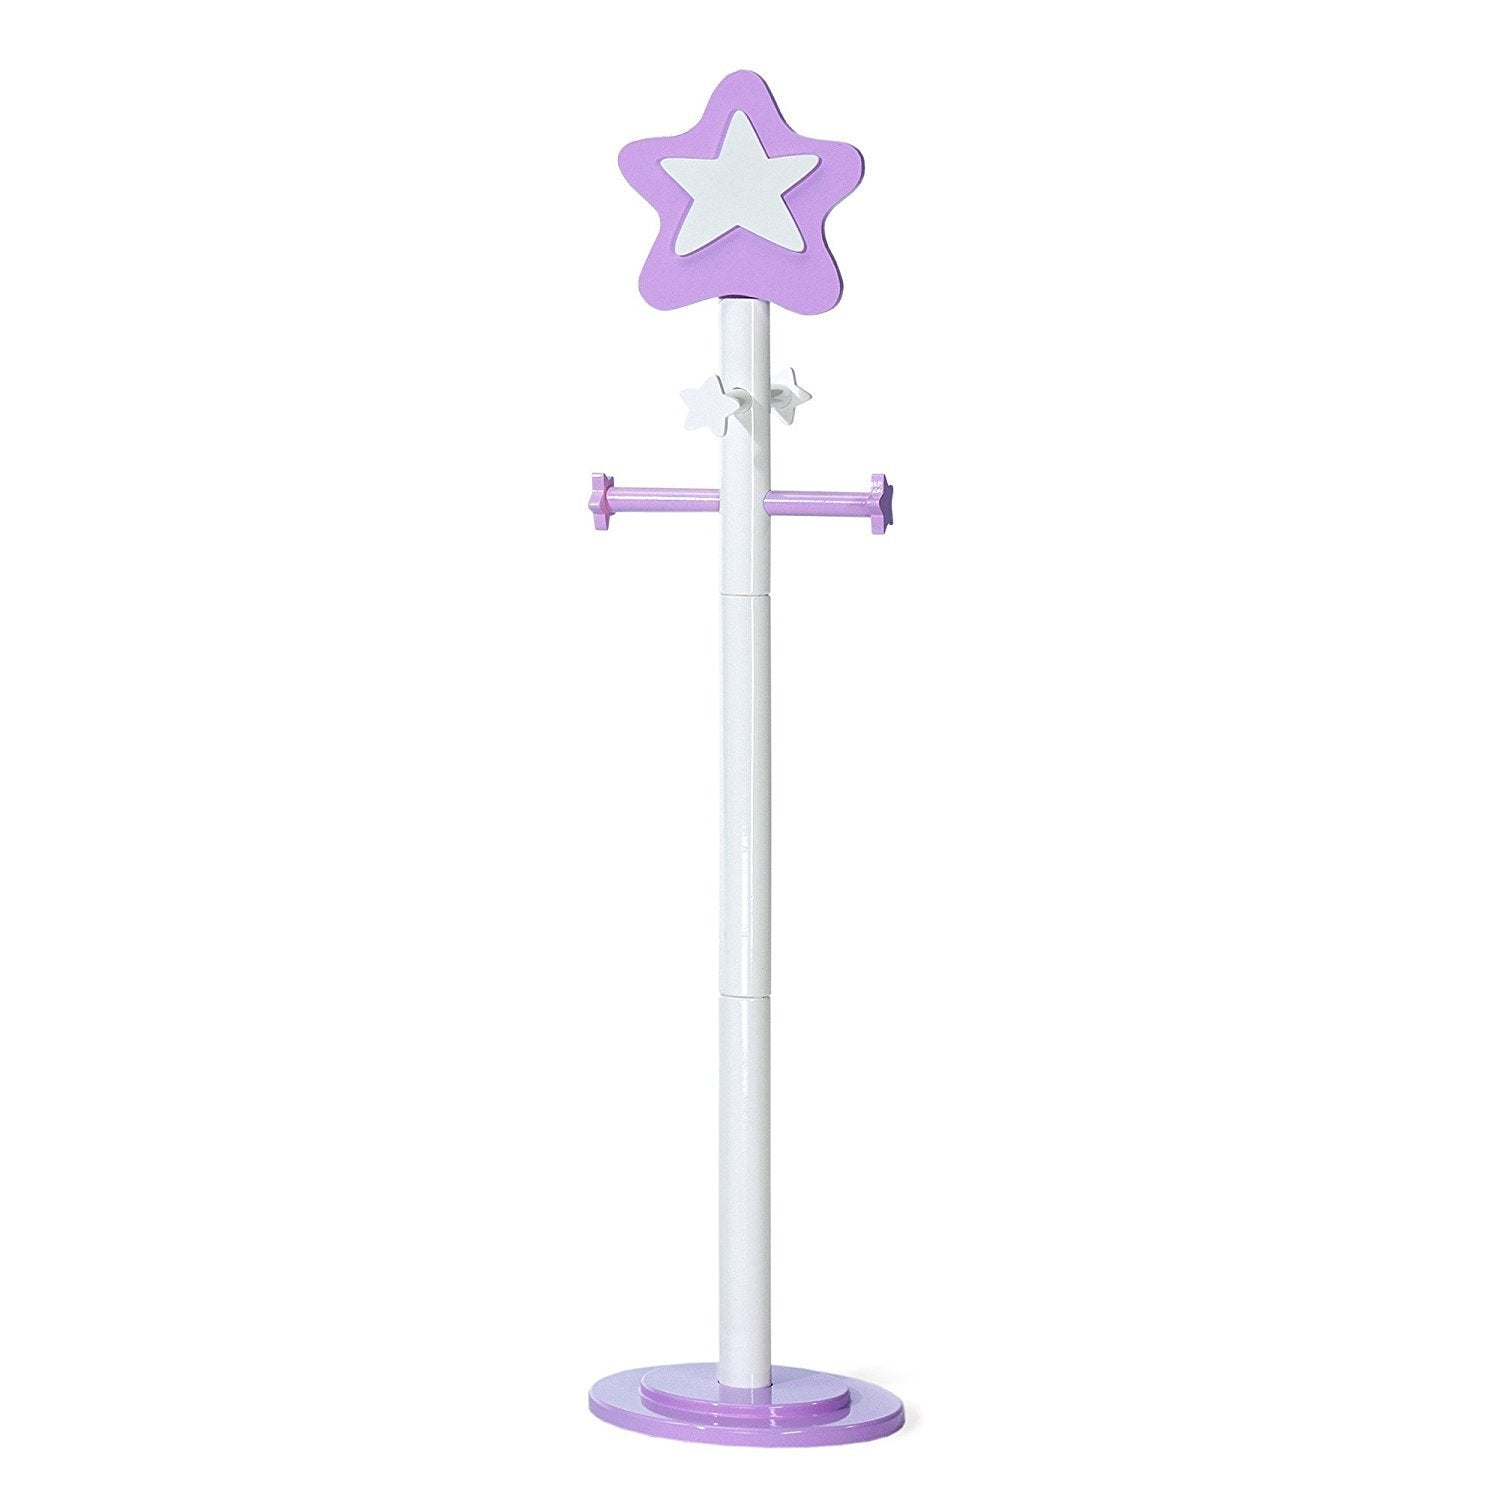 Alondra H552 – Children's Standing Hanger with Star Motif.